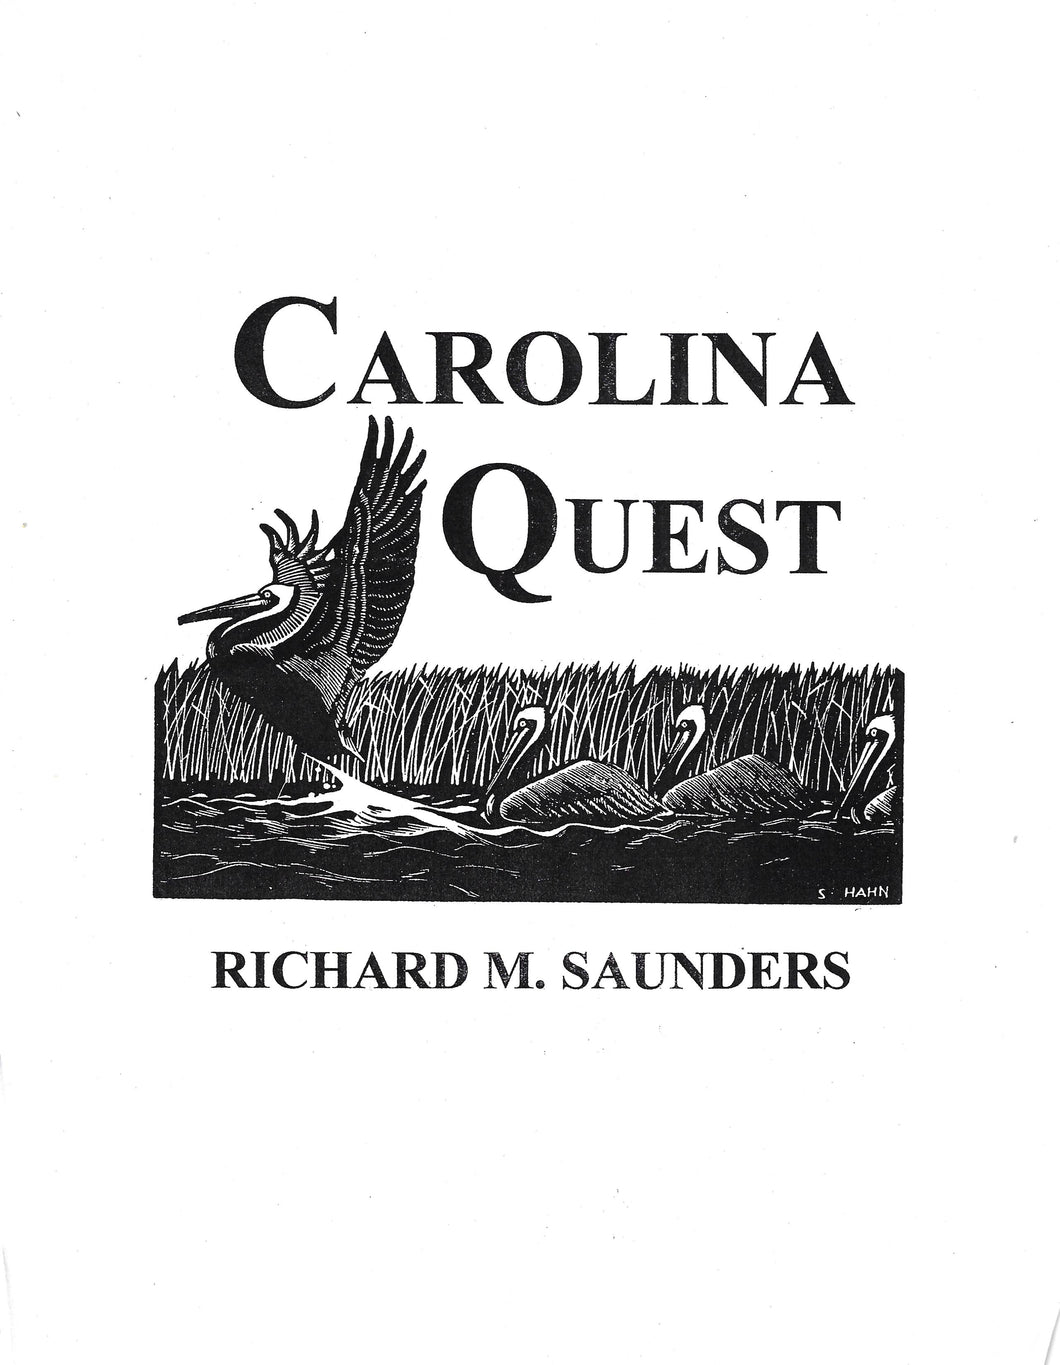 Carolina Quest ~ Thomas Murray & Richard Saunders